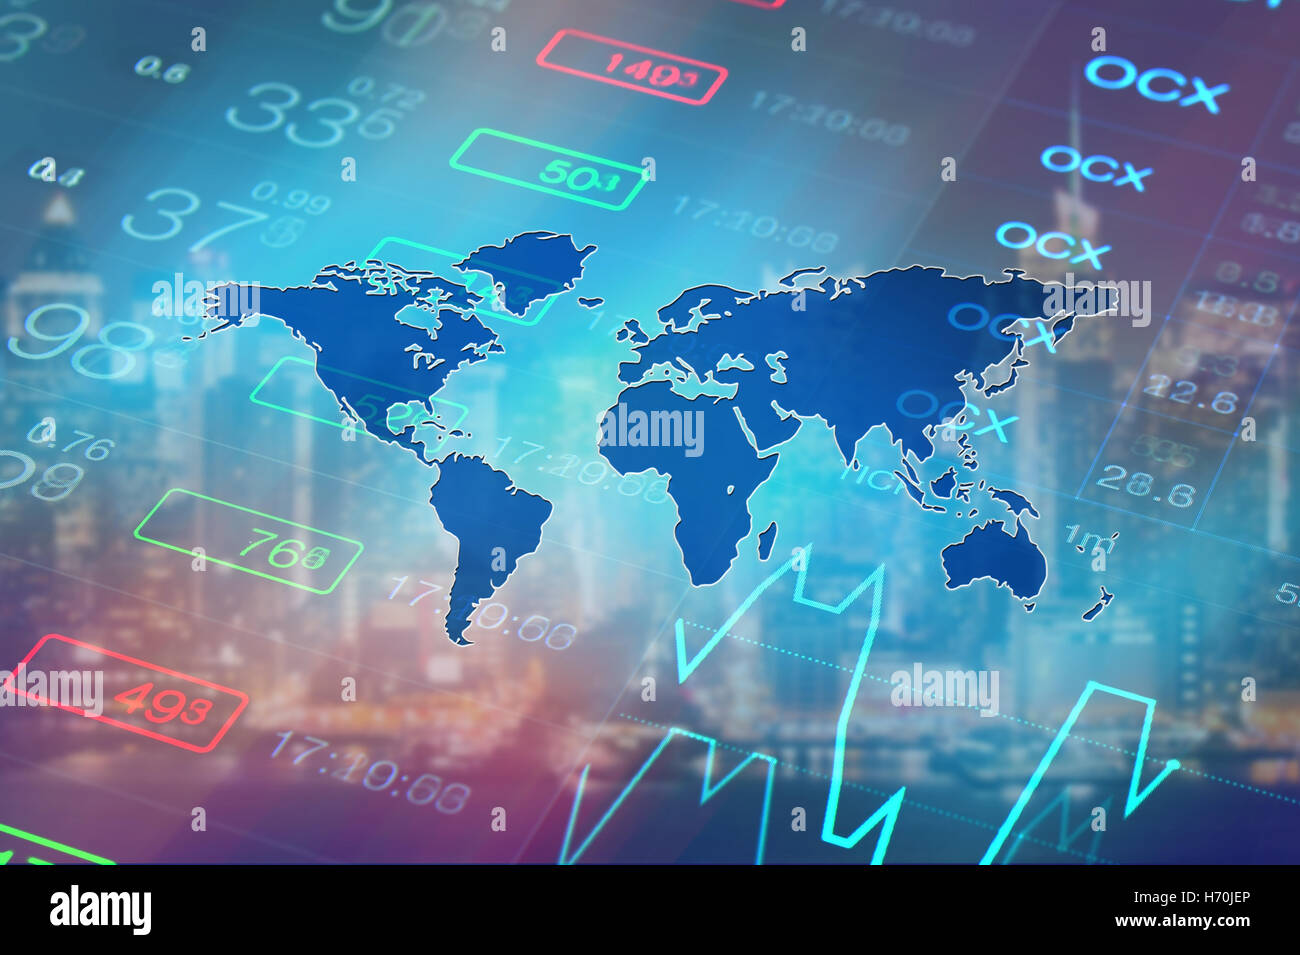 Global economy, financial, stock market, global business concept background. Stock market data and chart at background - Stock Image